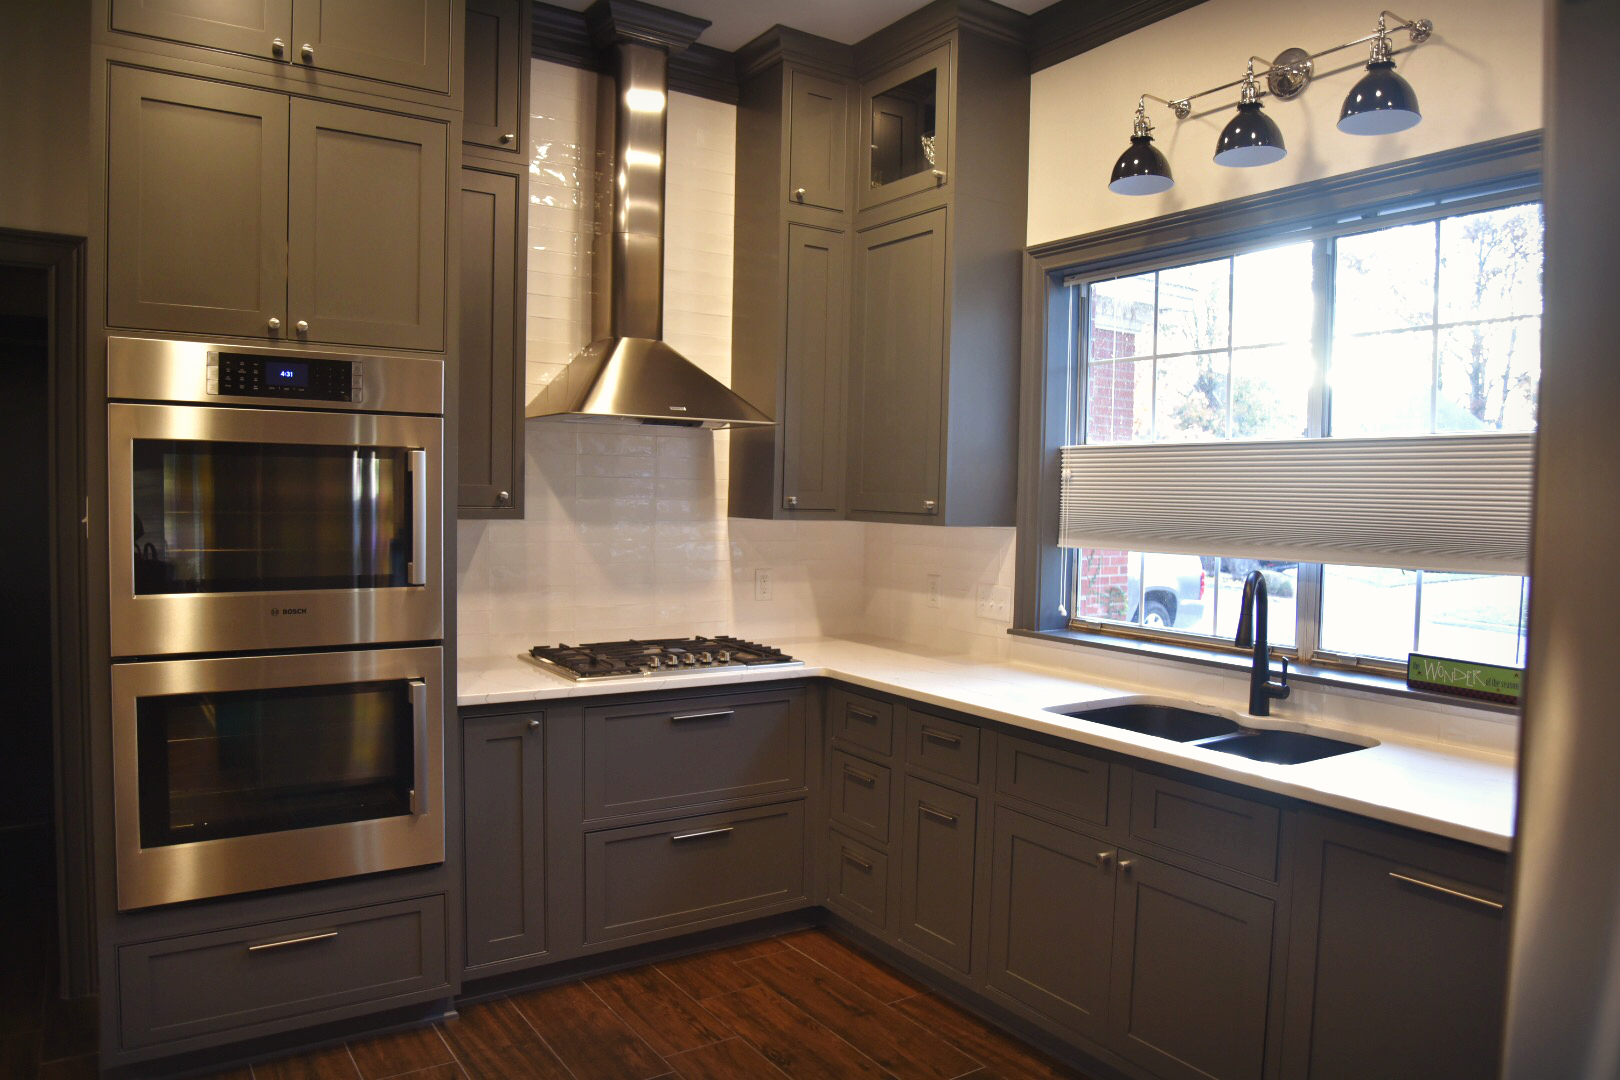 Bosch  appliances,  Cambria  countertops, and Shiloh cabinetry are included in this local kitchen project...